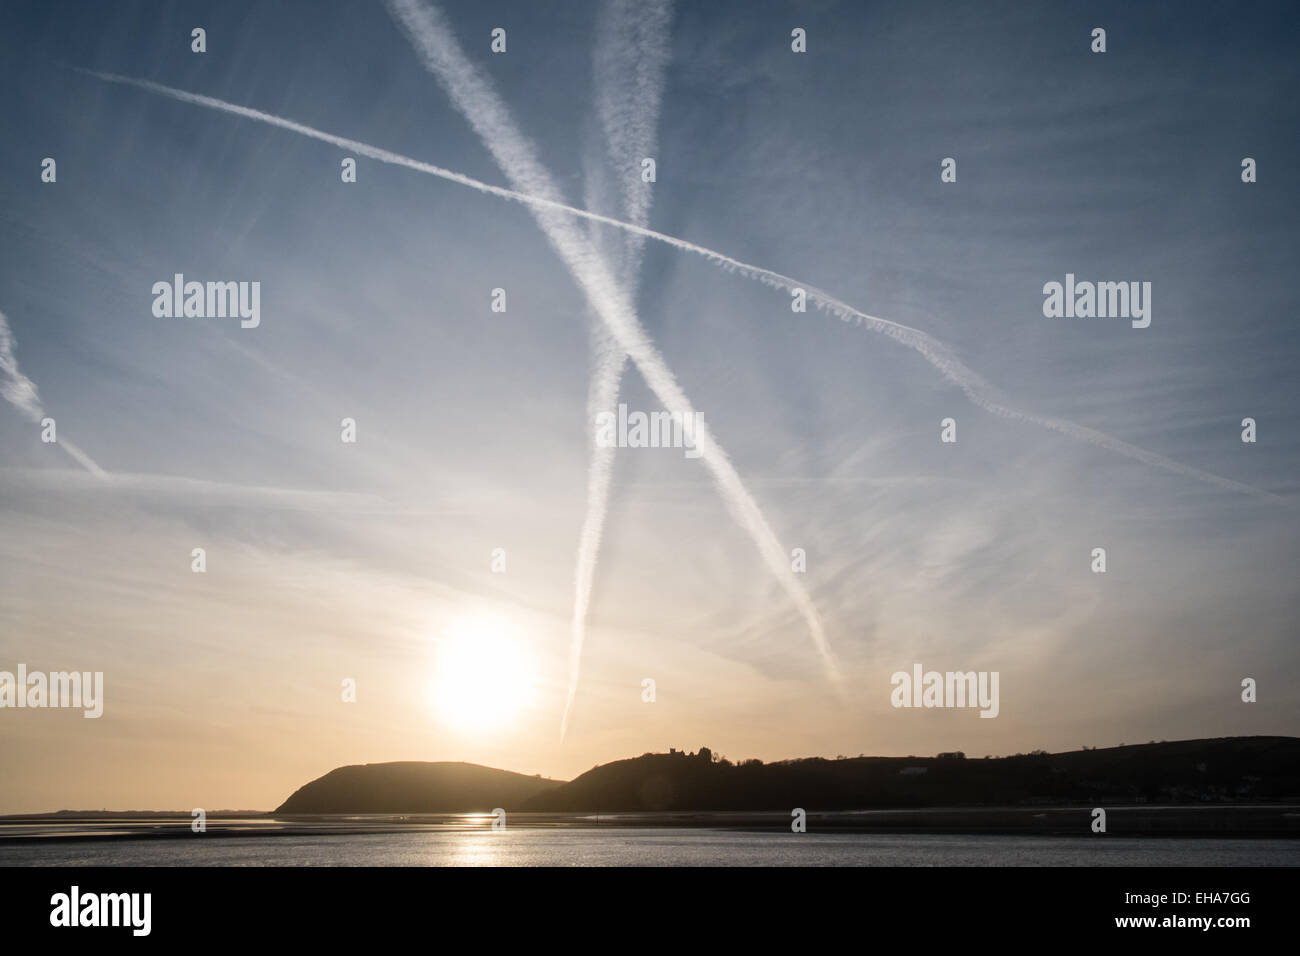 Ferryside, UK. 10th March, 2015. Airplane vapour vapor trails across the sky from Ferryside village at sunset. Llanstephan - Stock Image